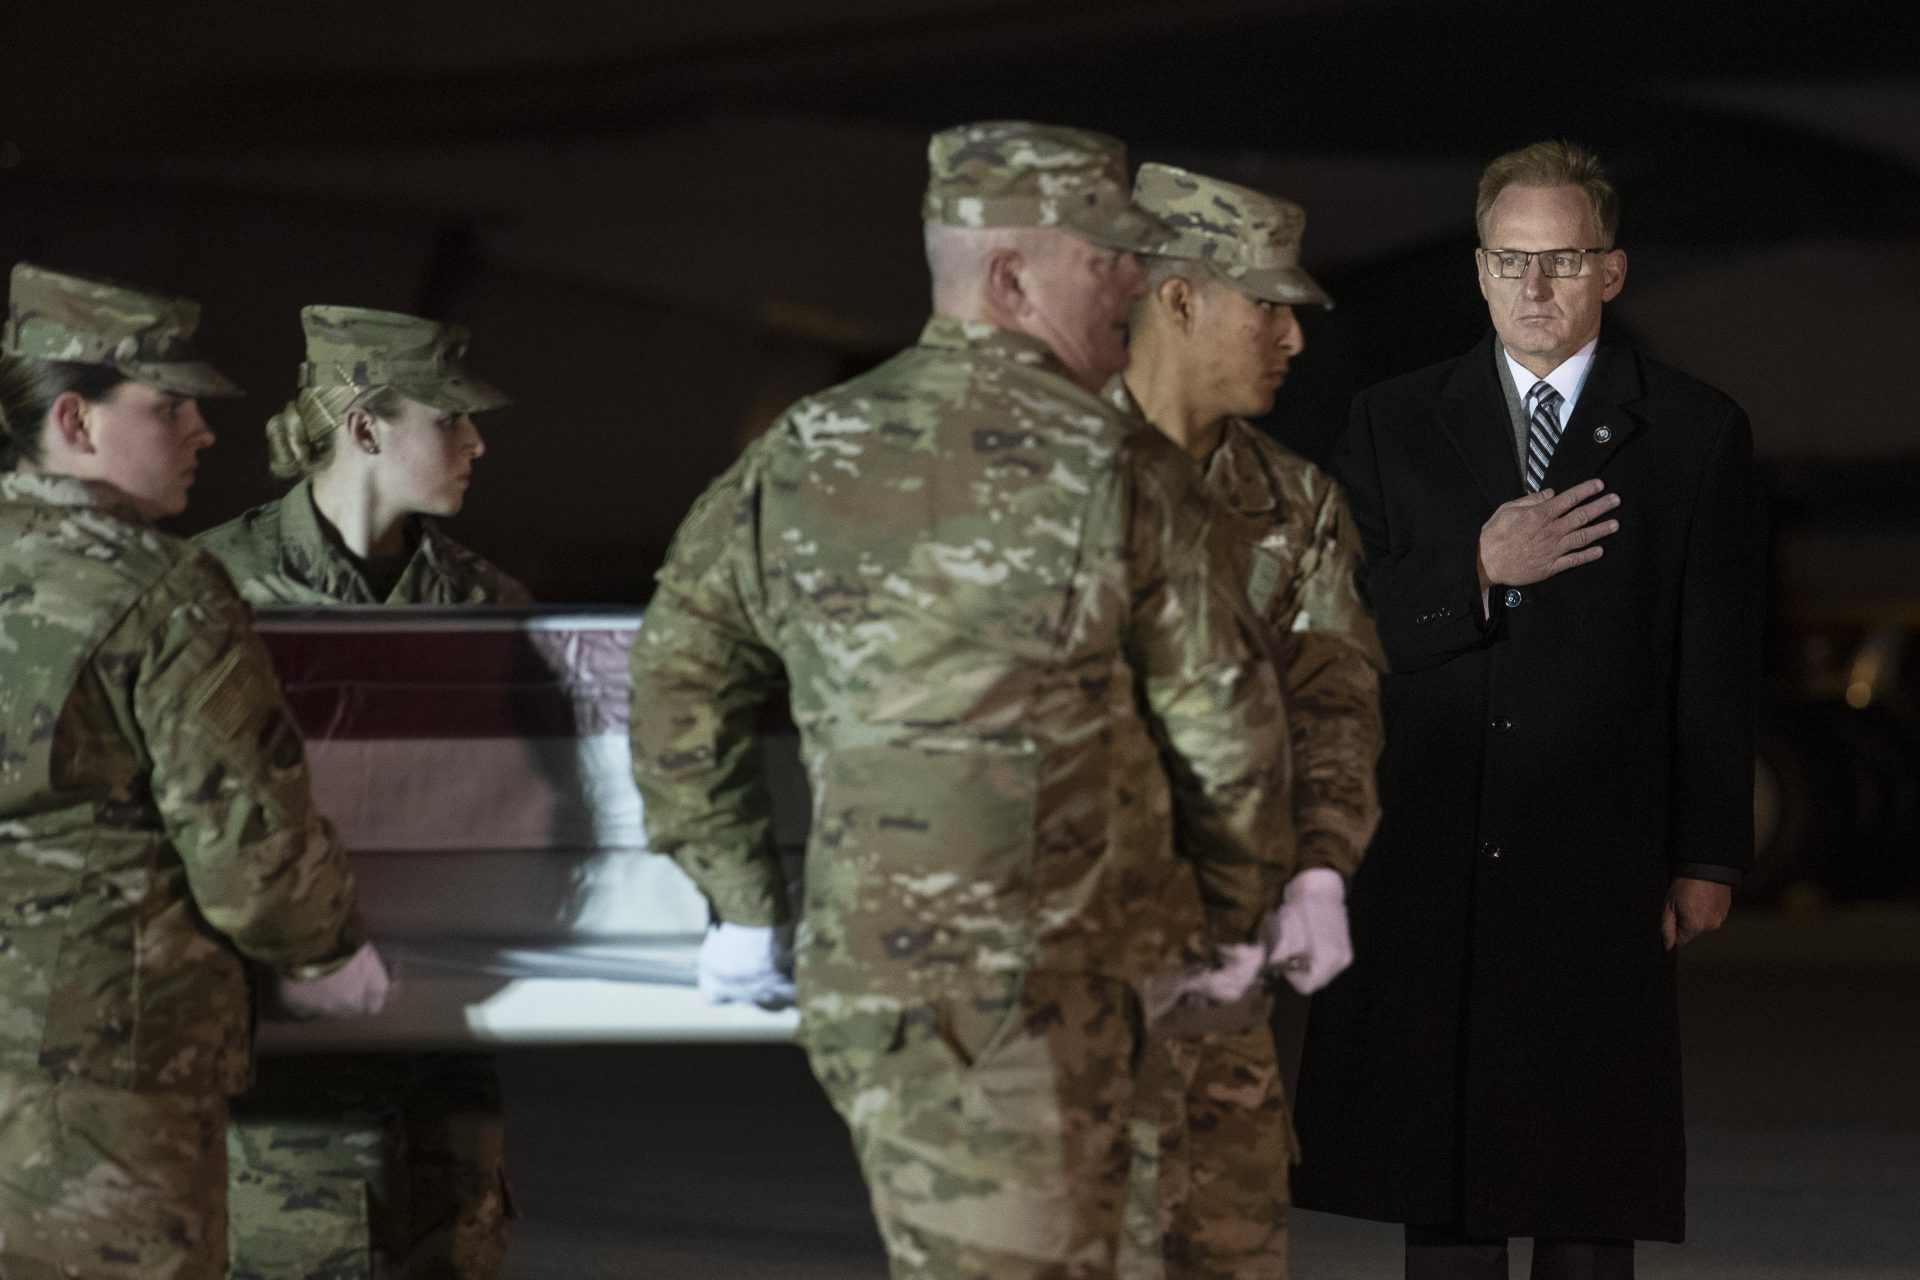 Acting Navy Secretary Thomas Modly, right, looks on as an Air Force carry team moves a transfer case containing the remains of Navy Ensign Joshua Watson on Sunday, Dec. 8, 2019, at Dover Air Force Base, Del. A Saudi gunman killed three people including 23-year-old Watson, a recent graduate of the U.S. Naval Academy from Enterprise, Ala., in a shooting at Naval Air Station Pensacola in Florida.